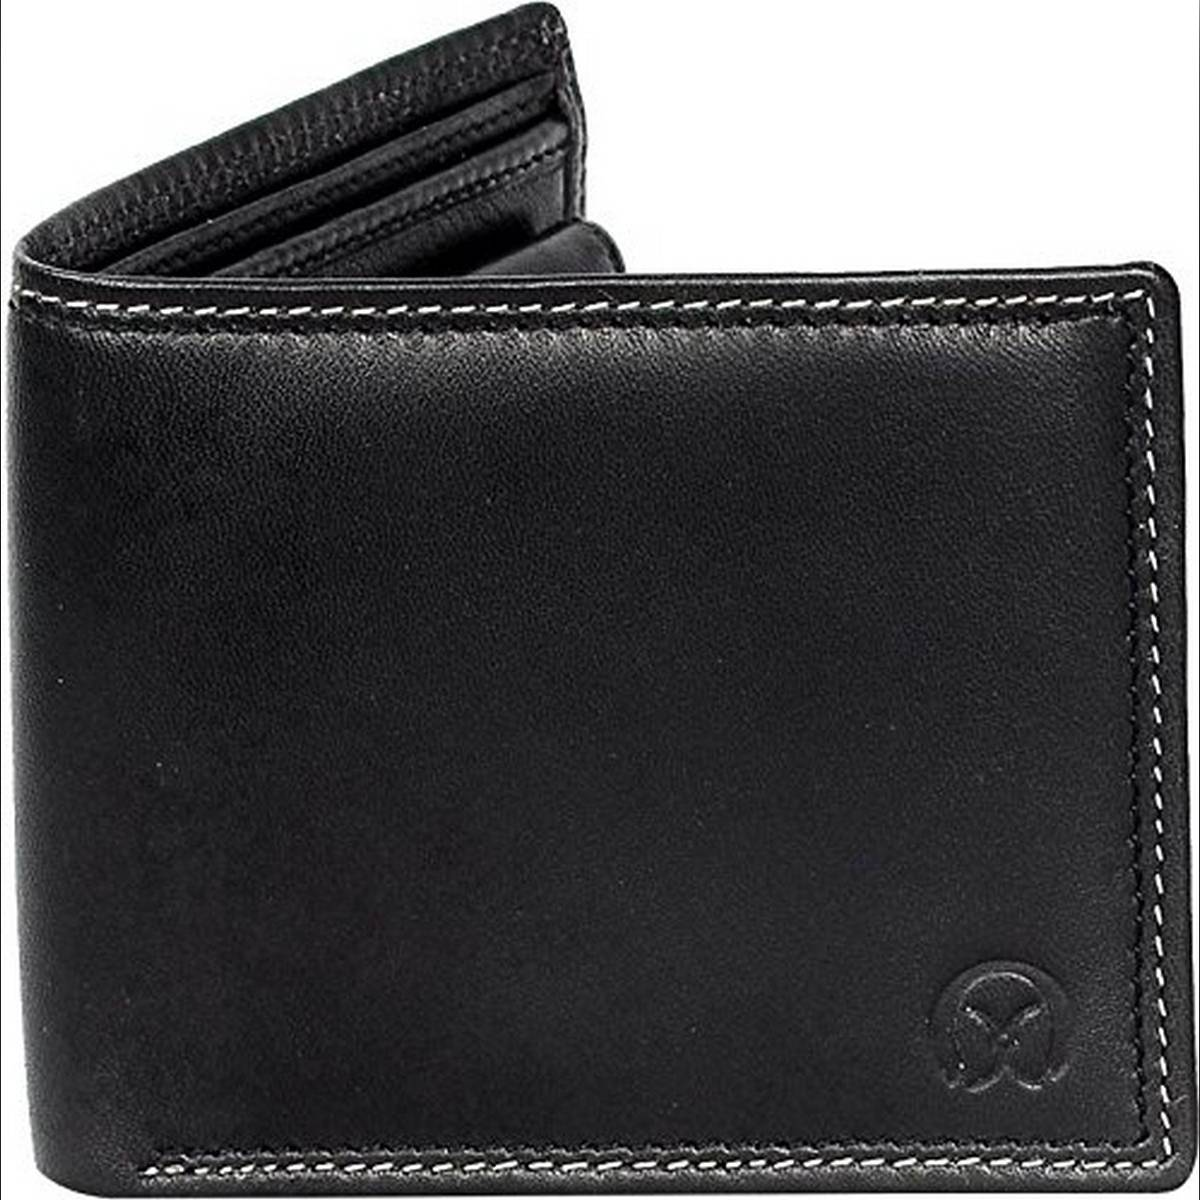 Leather Style Wallet  Black